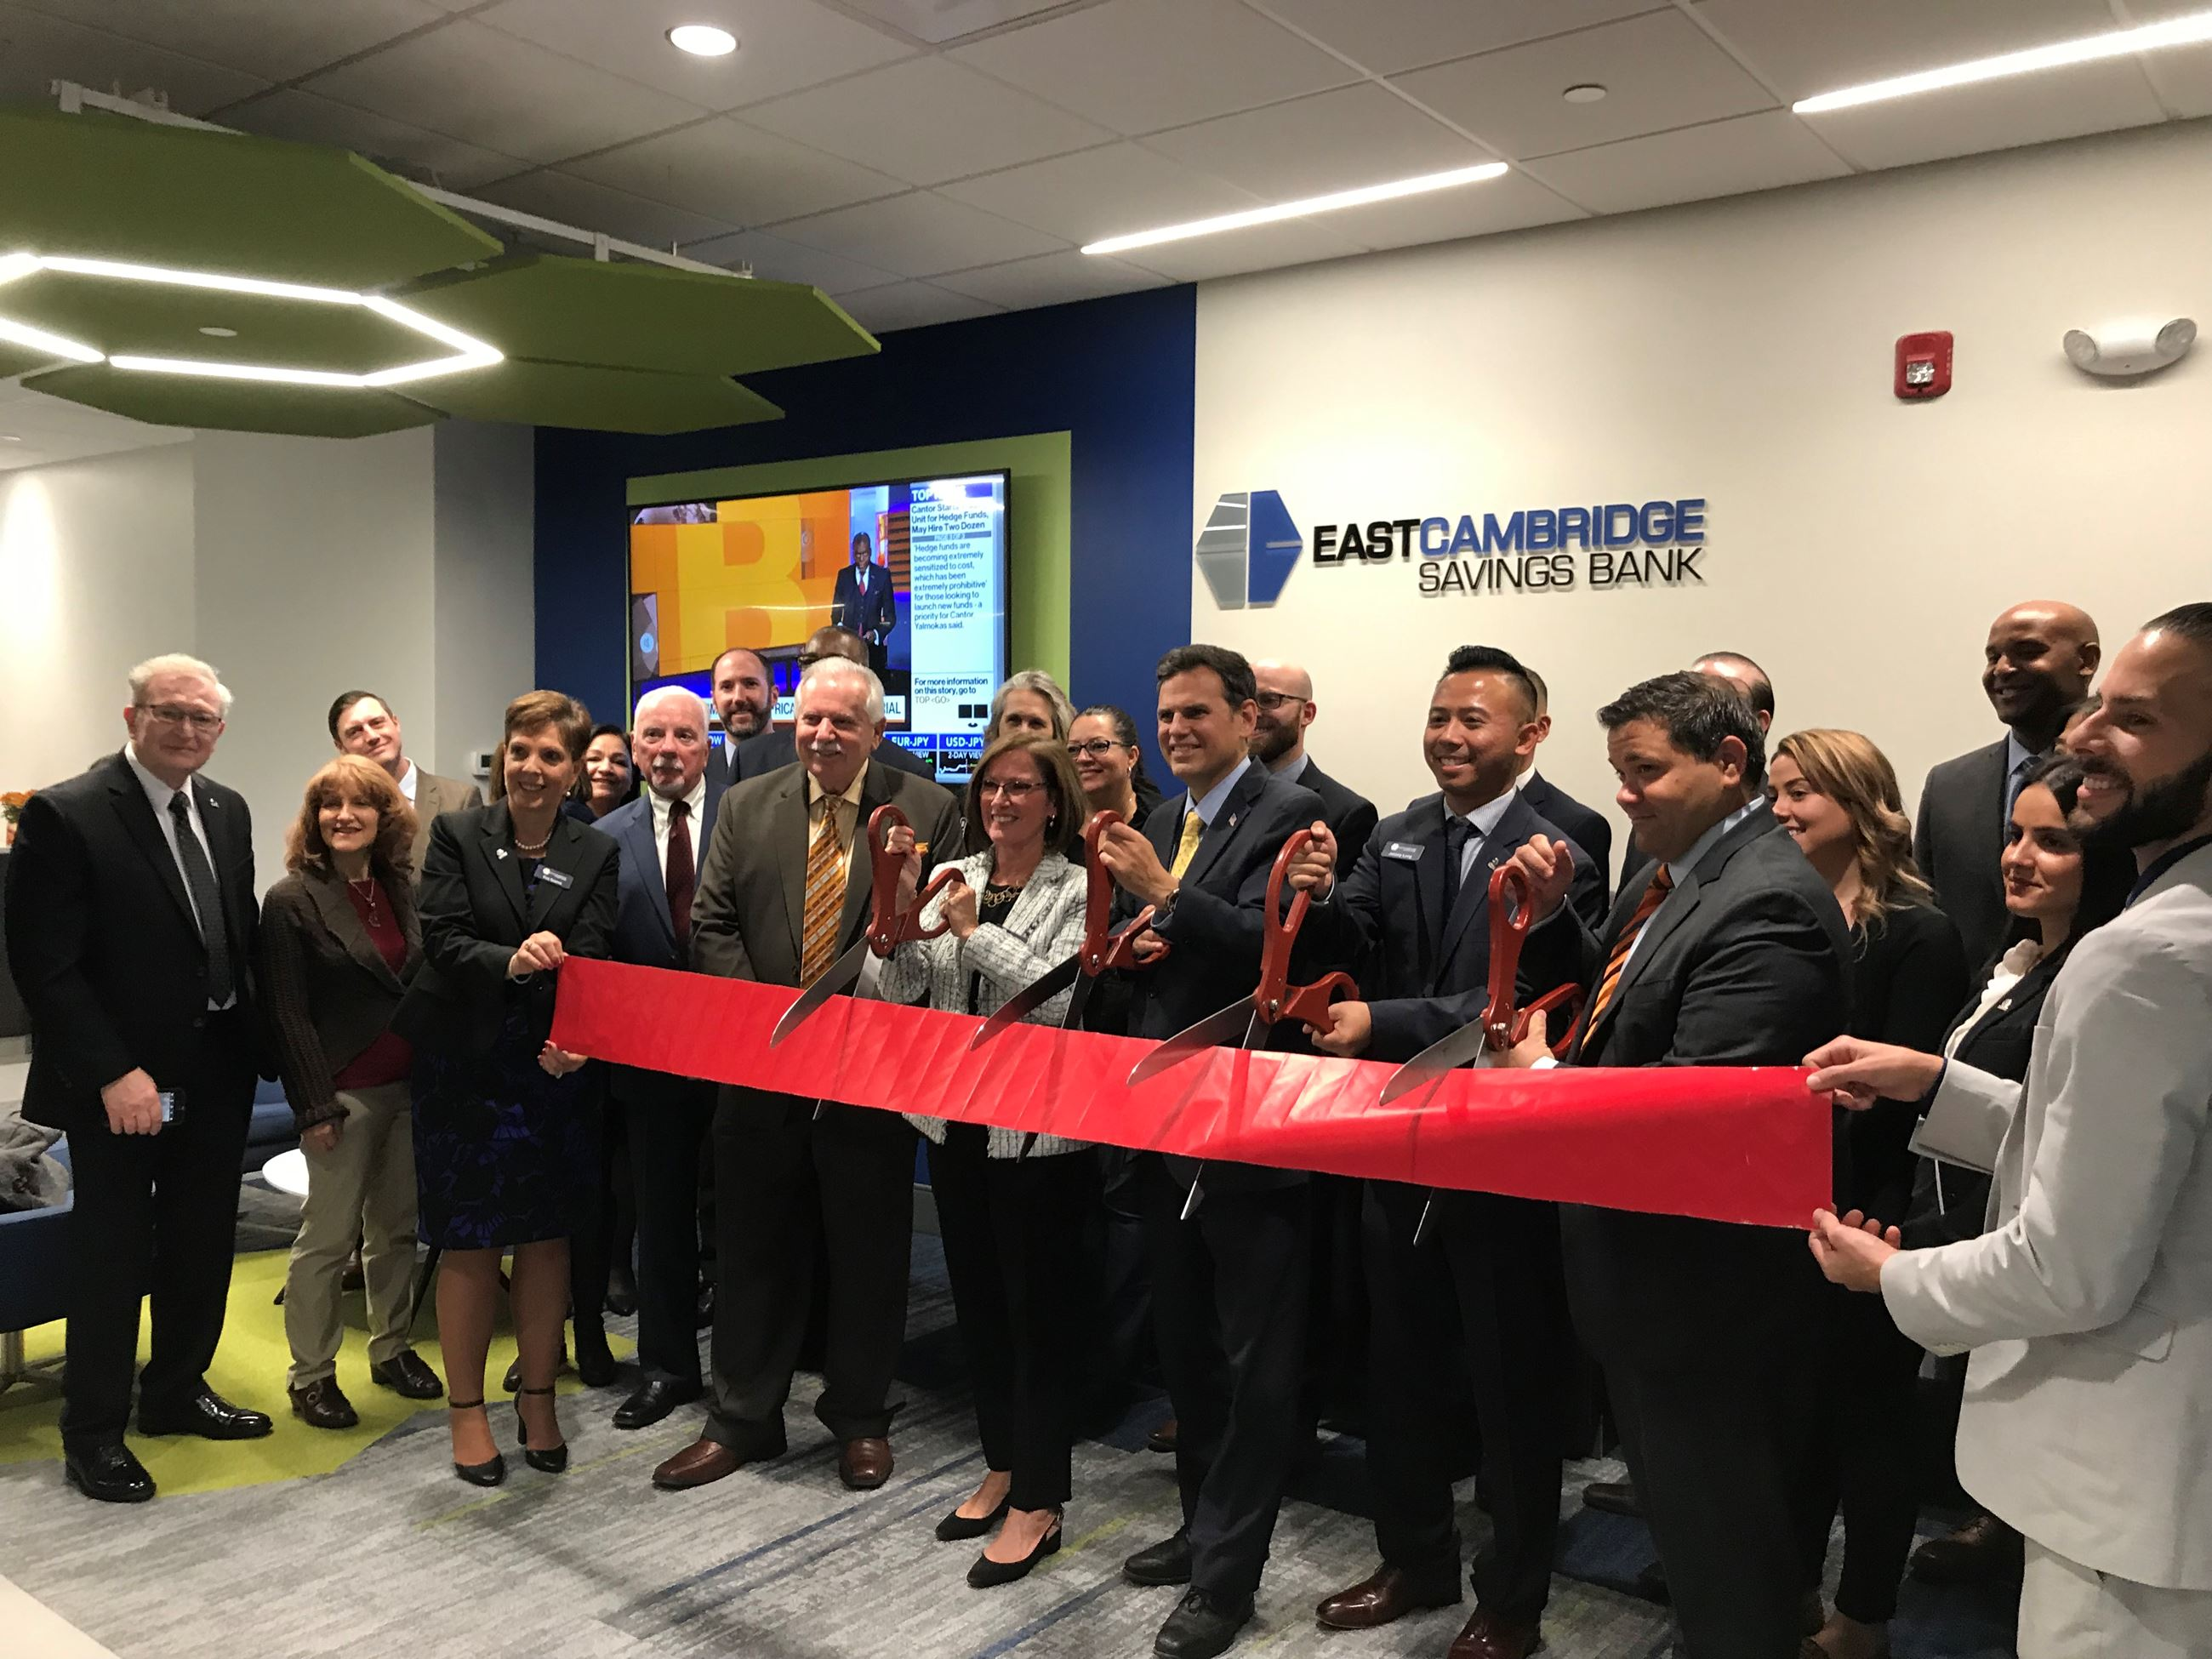 East Cambridge Savings Bank Ribbon Cutting